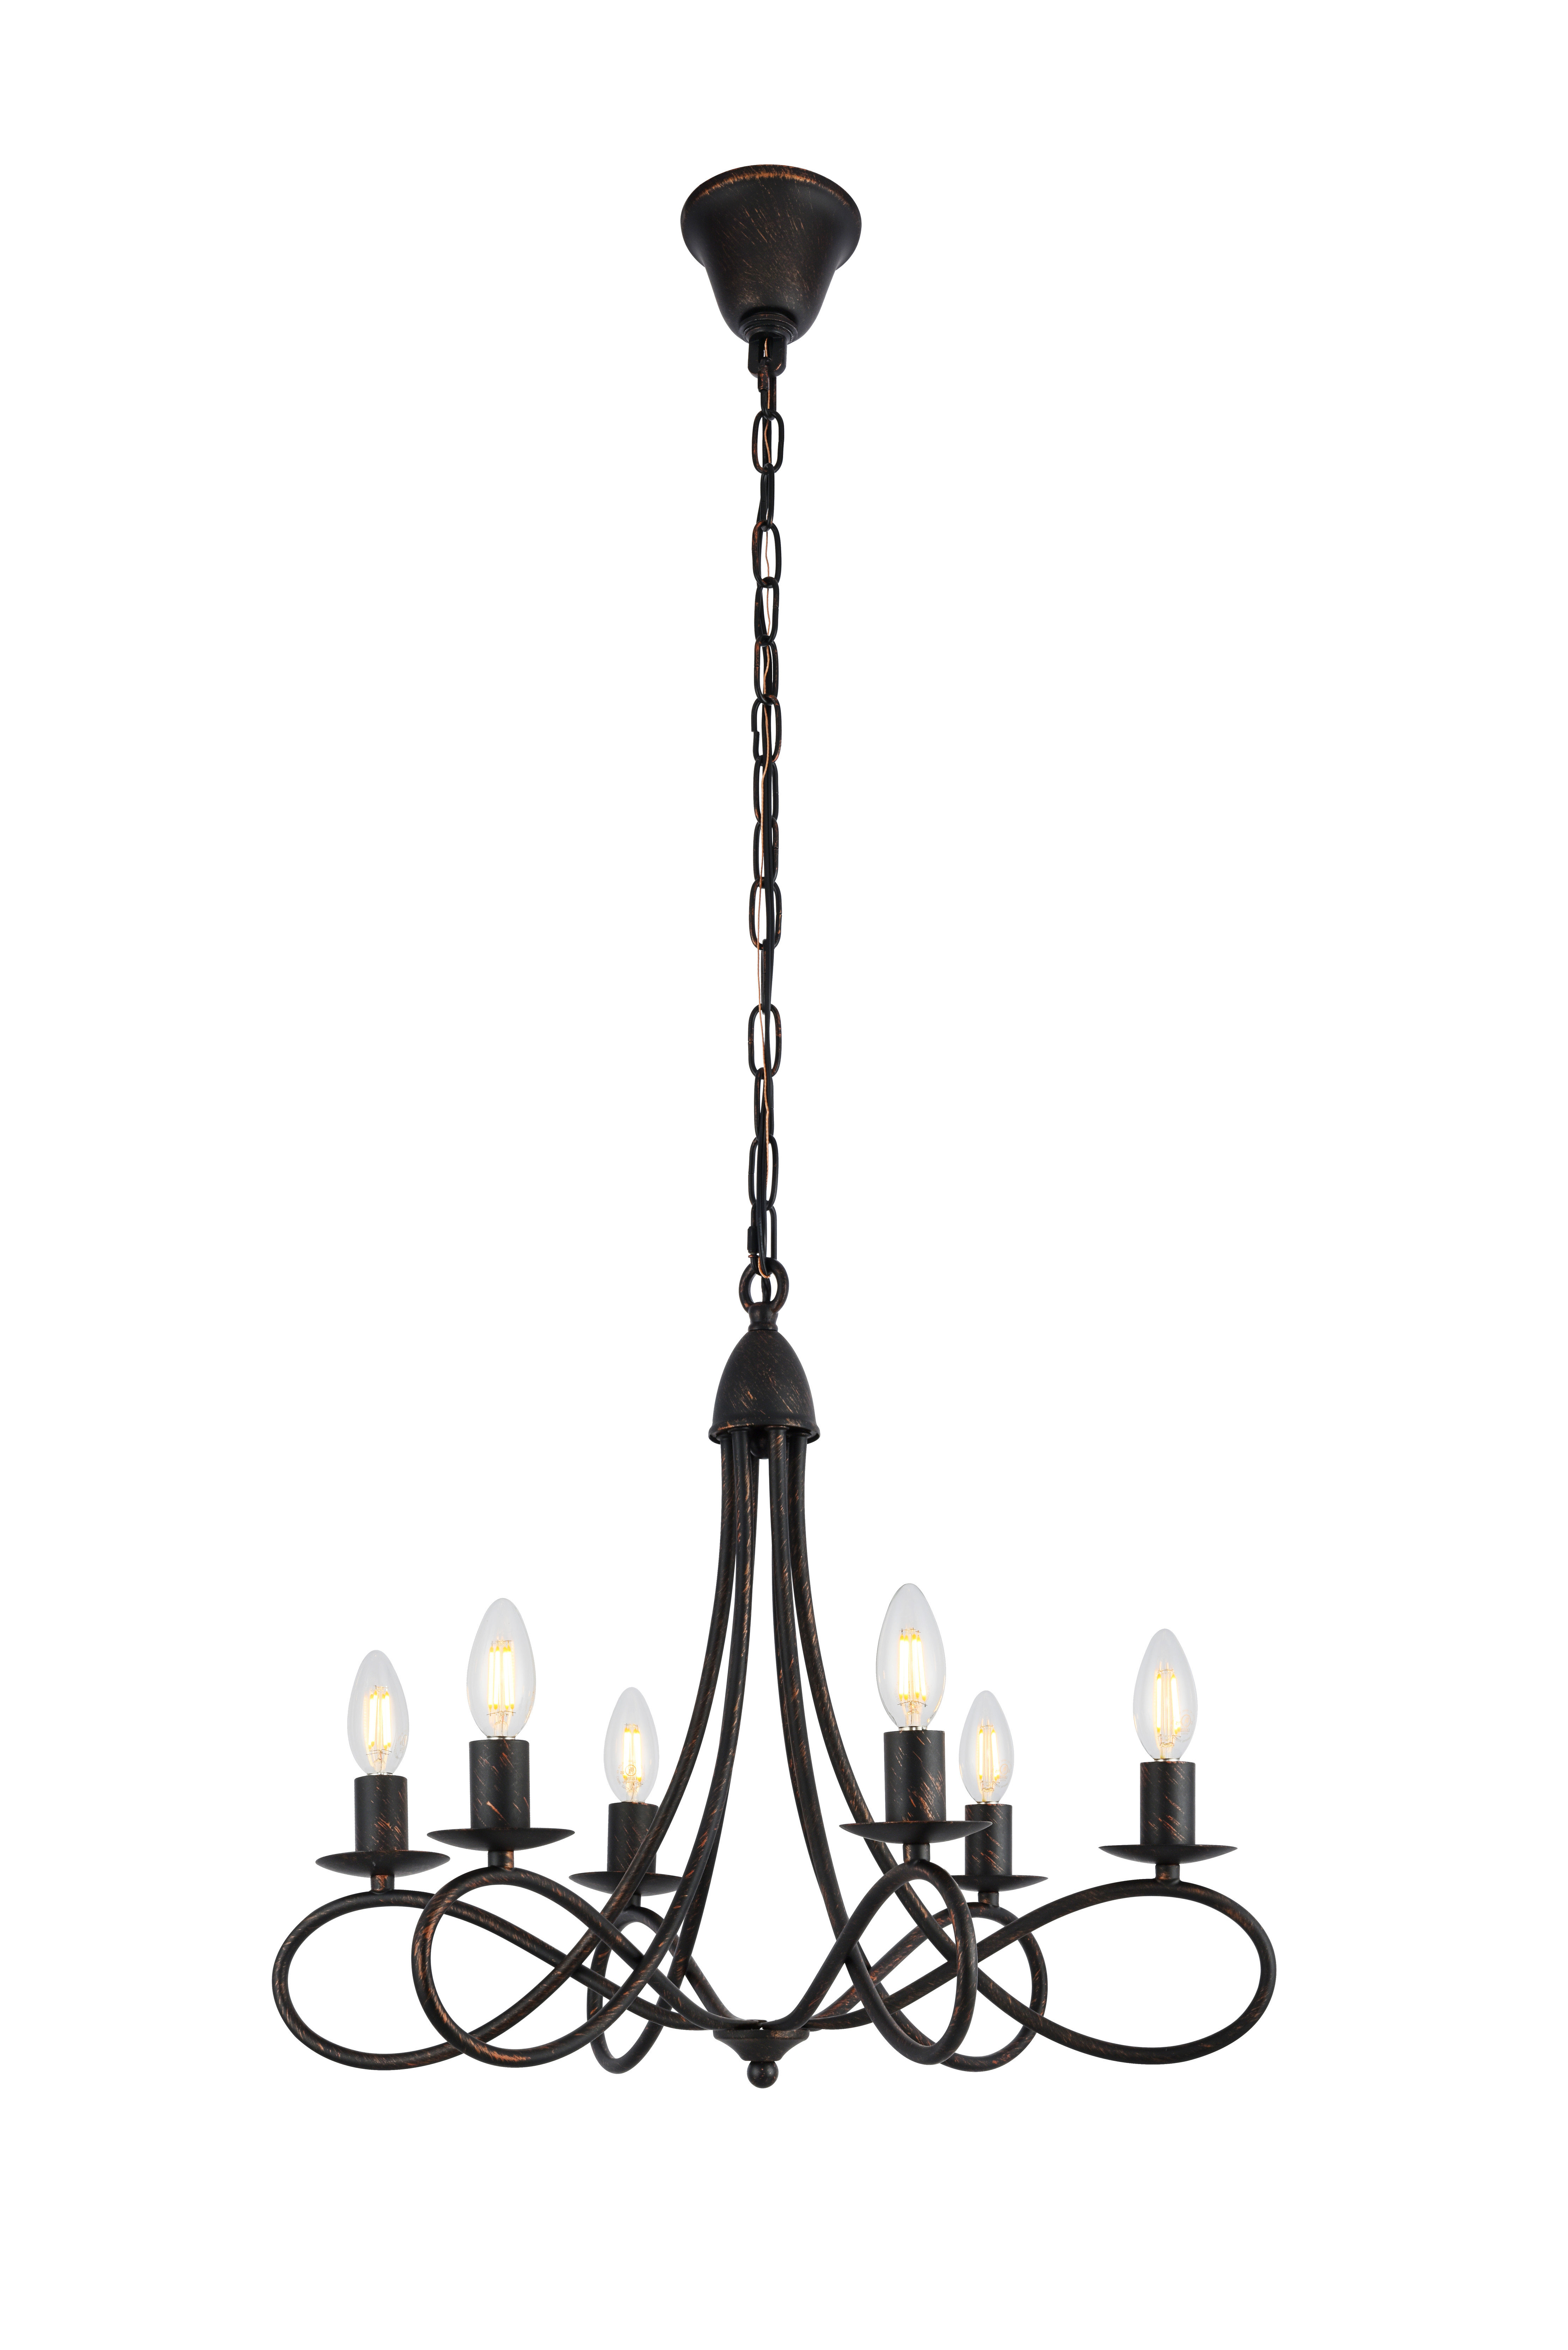 Darby Home Co Diaz 6-Light Candle Style Chandelier for Best and Newest Sherri 6-Light Chandeliers